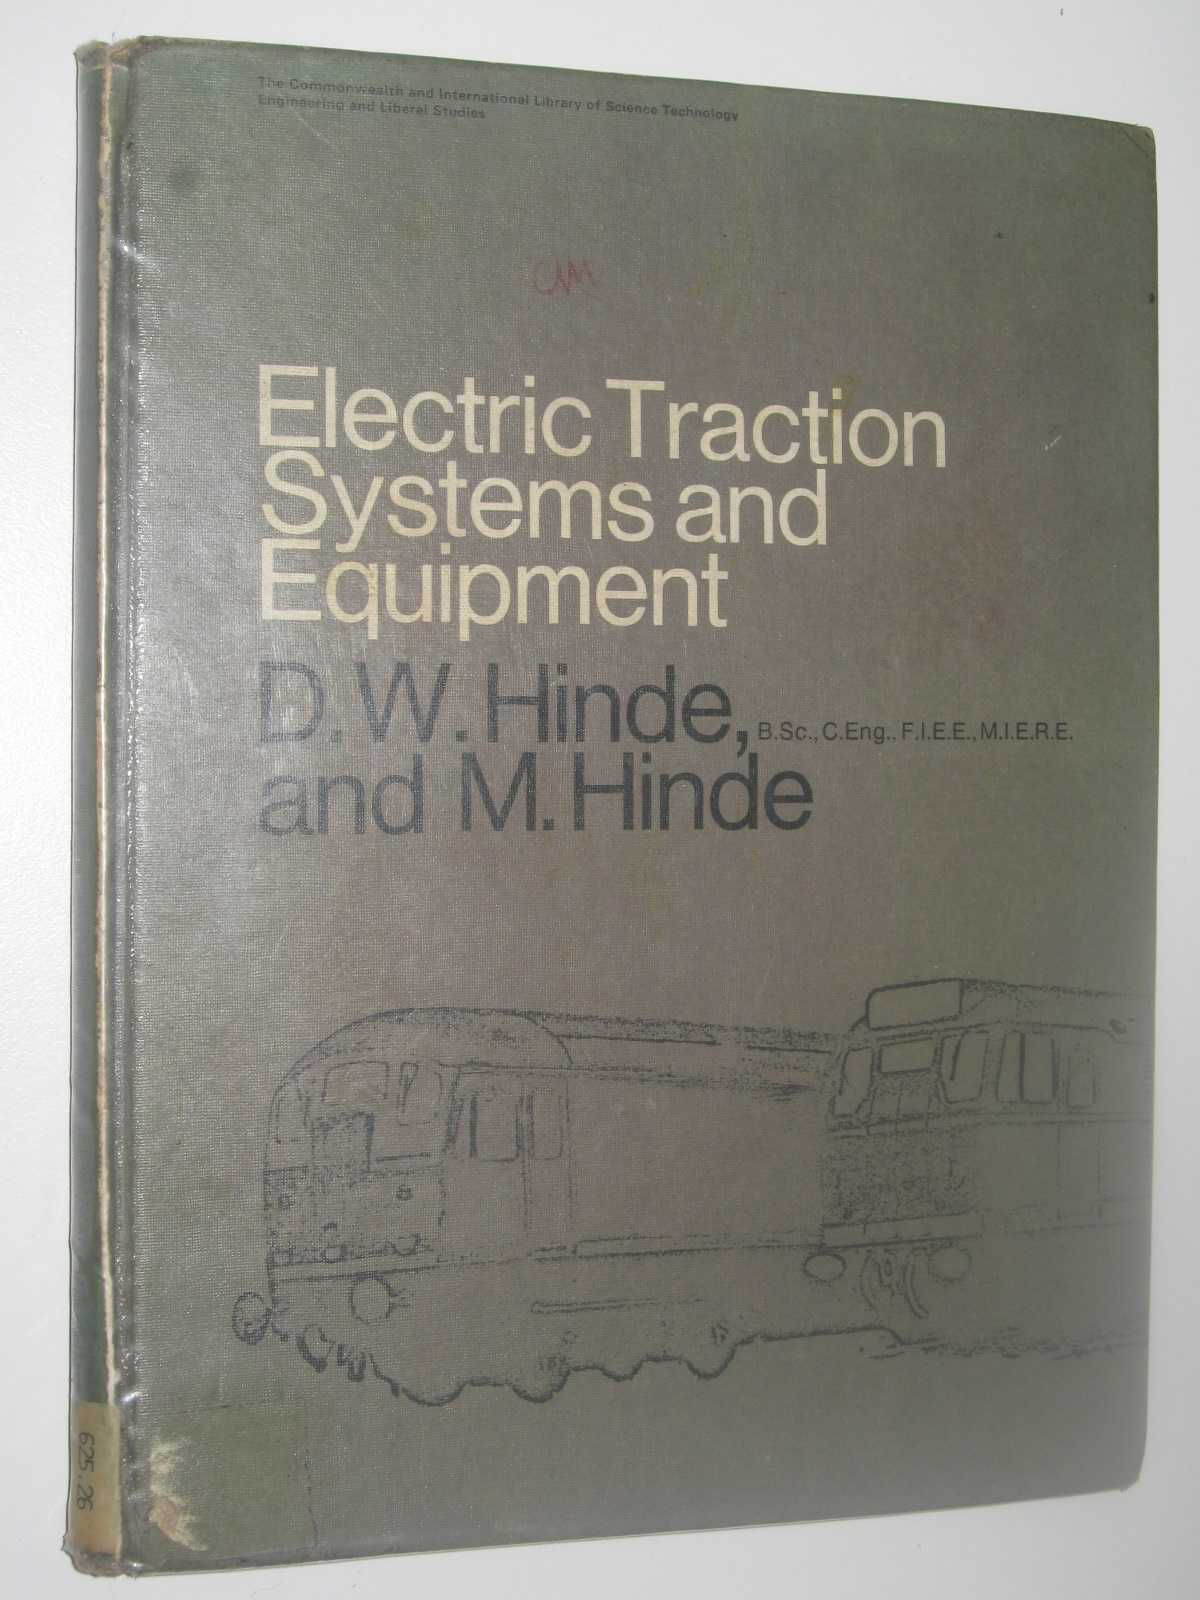 Electric Traction Systems and Equipment, Hinde, D. W.& Hind, M.